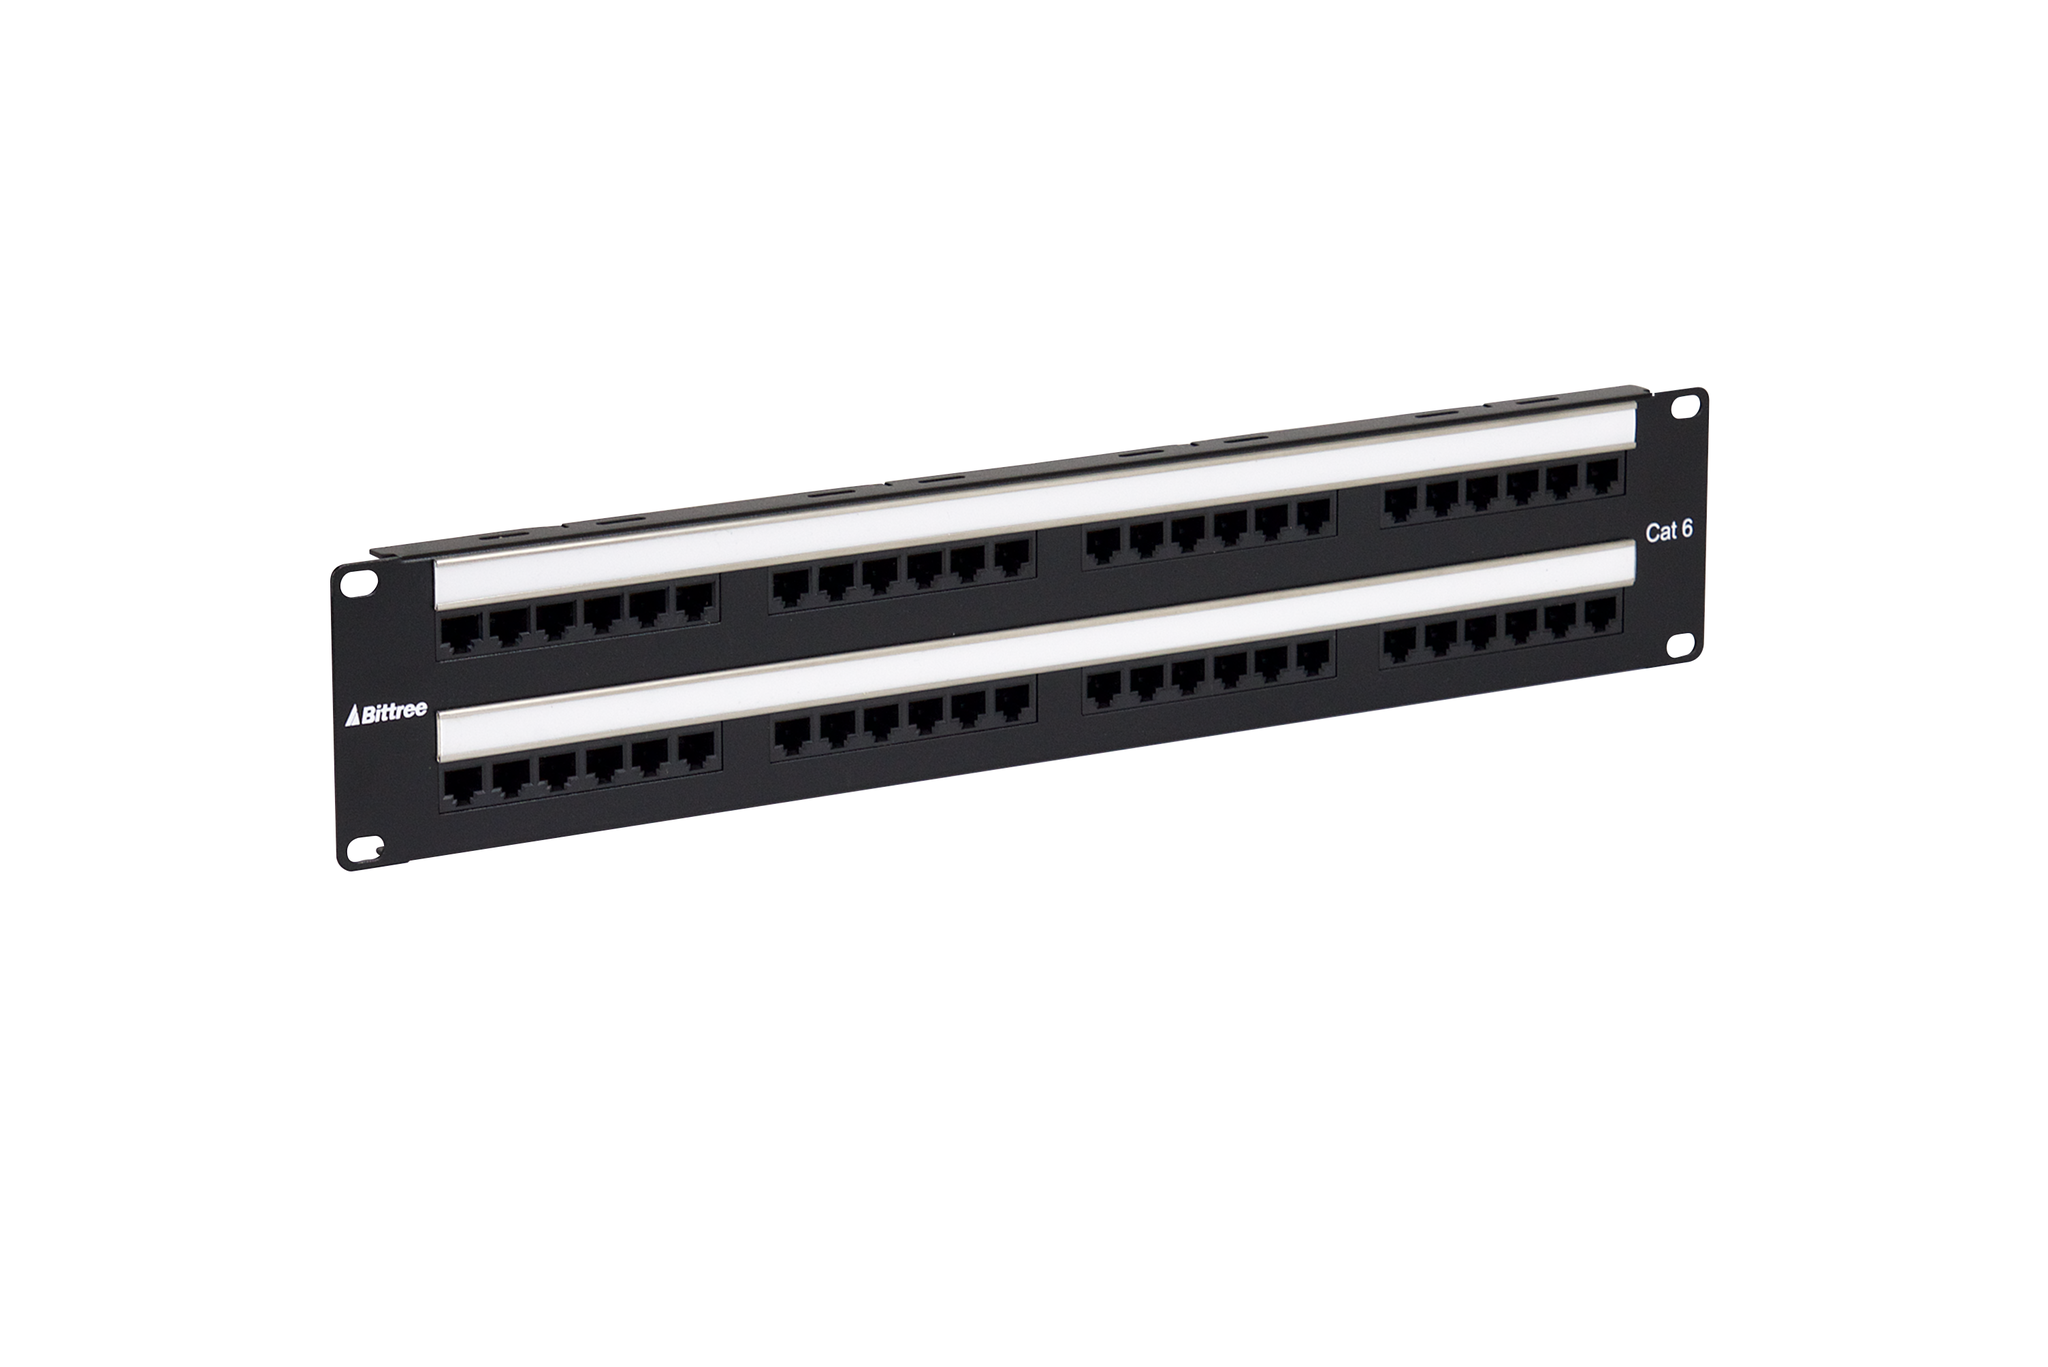 ... Flush-Mount Gigabit Ethernet Panel, CAT 6, 110 Punchdown, Unshielded,  2x24 ...